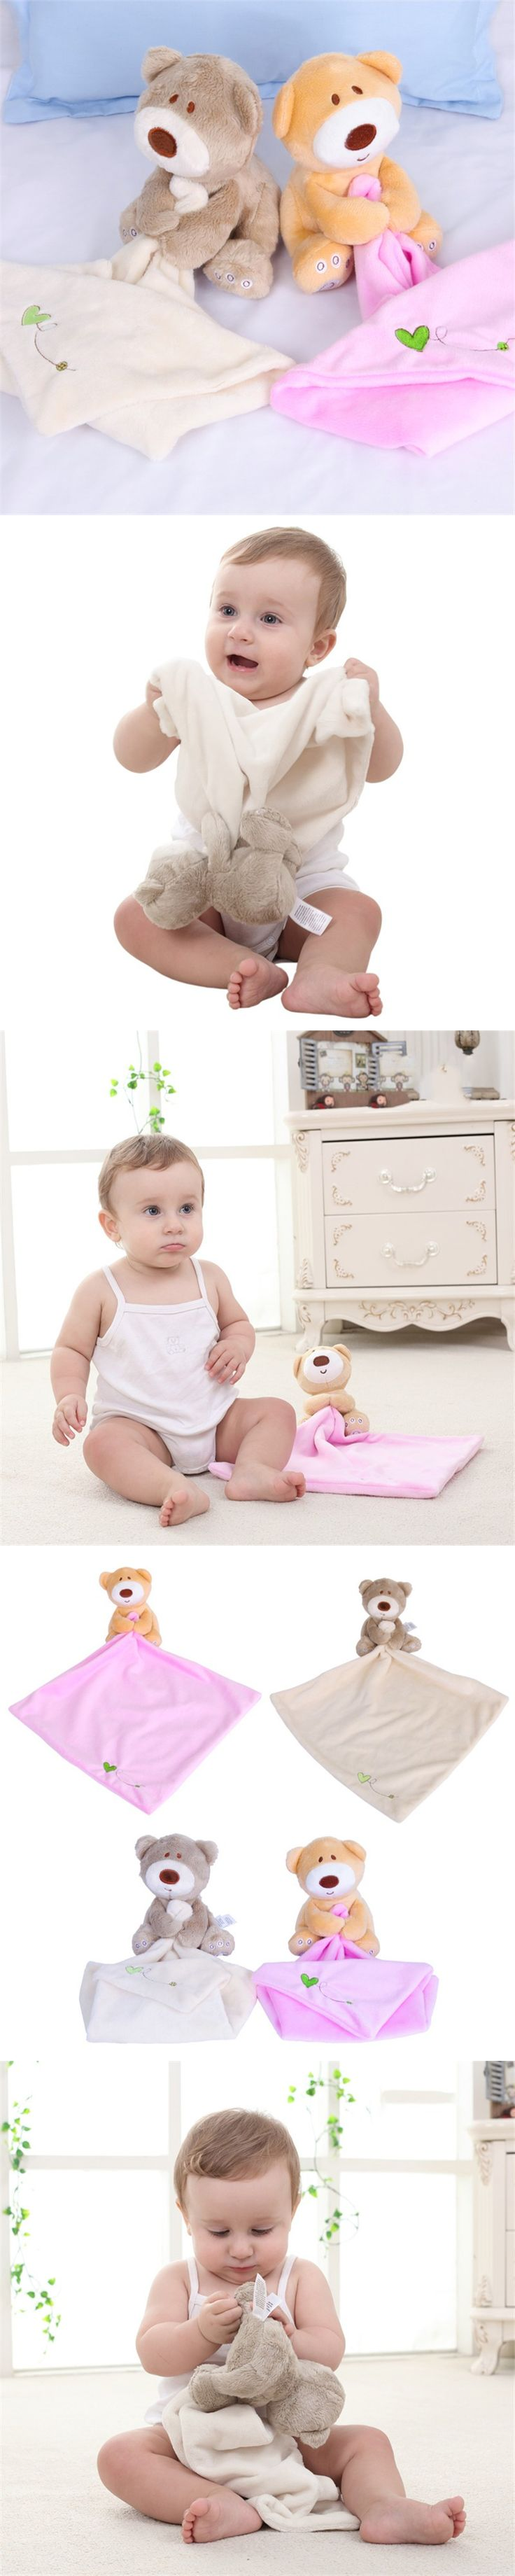 2016 HOT baby bear teething blankie teethers and toys Baby care baby handkerchief teether handkerchief lowest price clearance $4.99